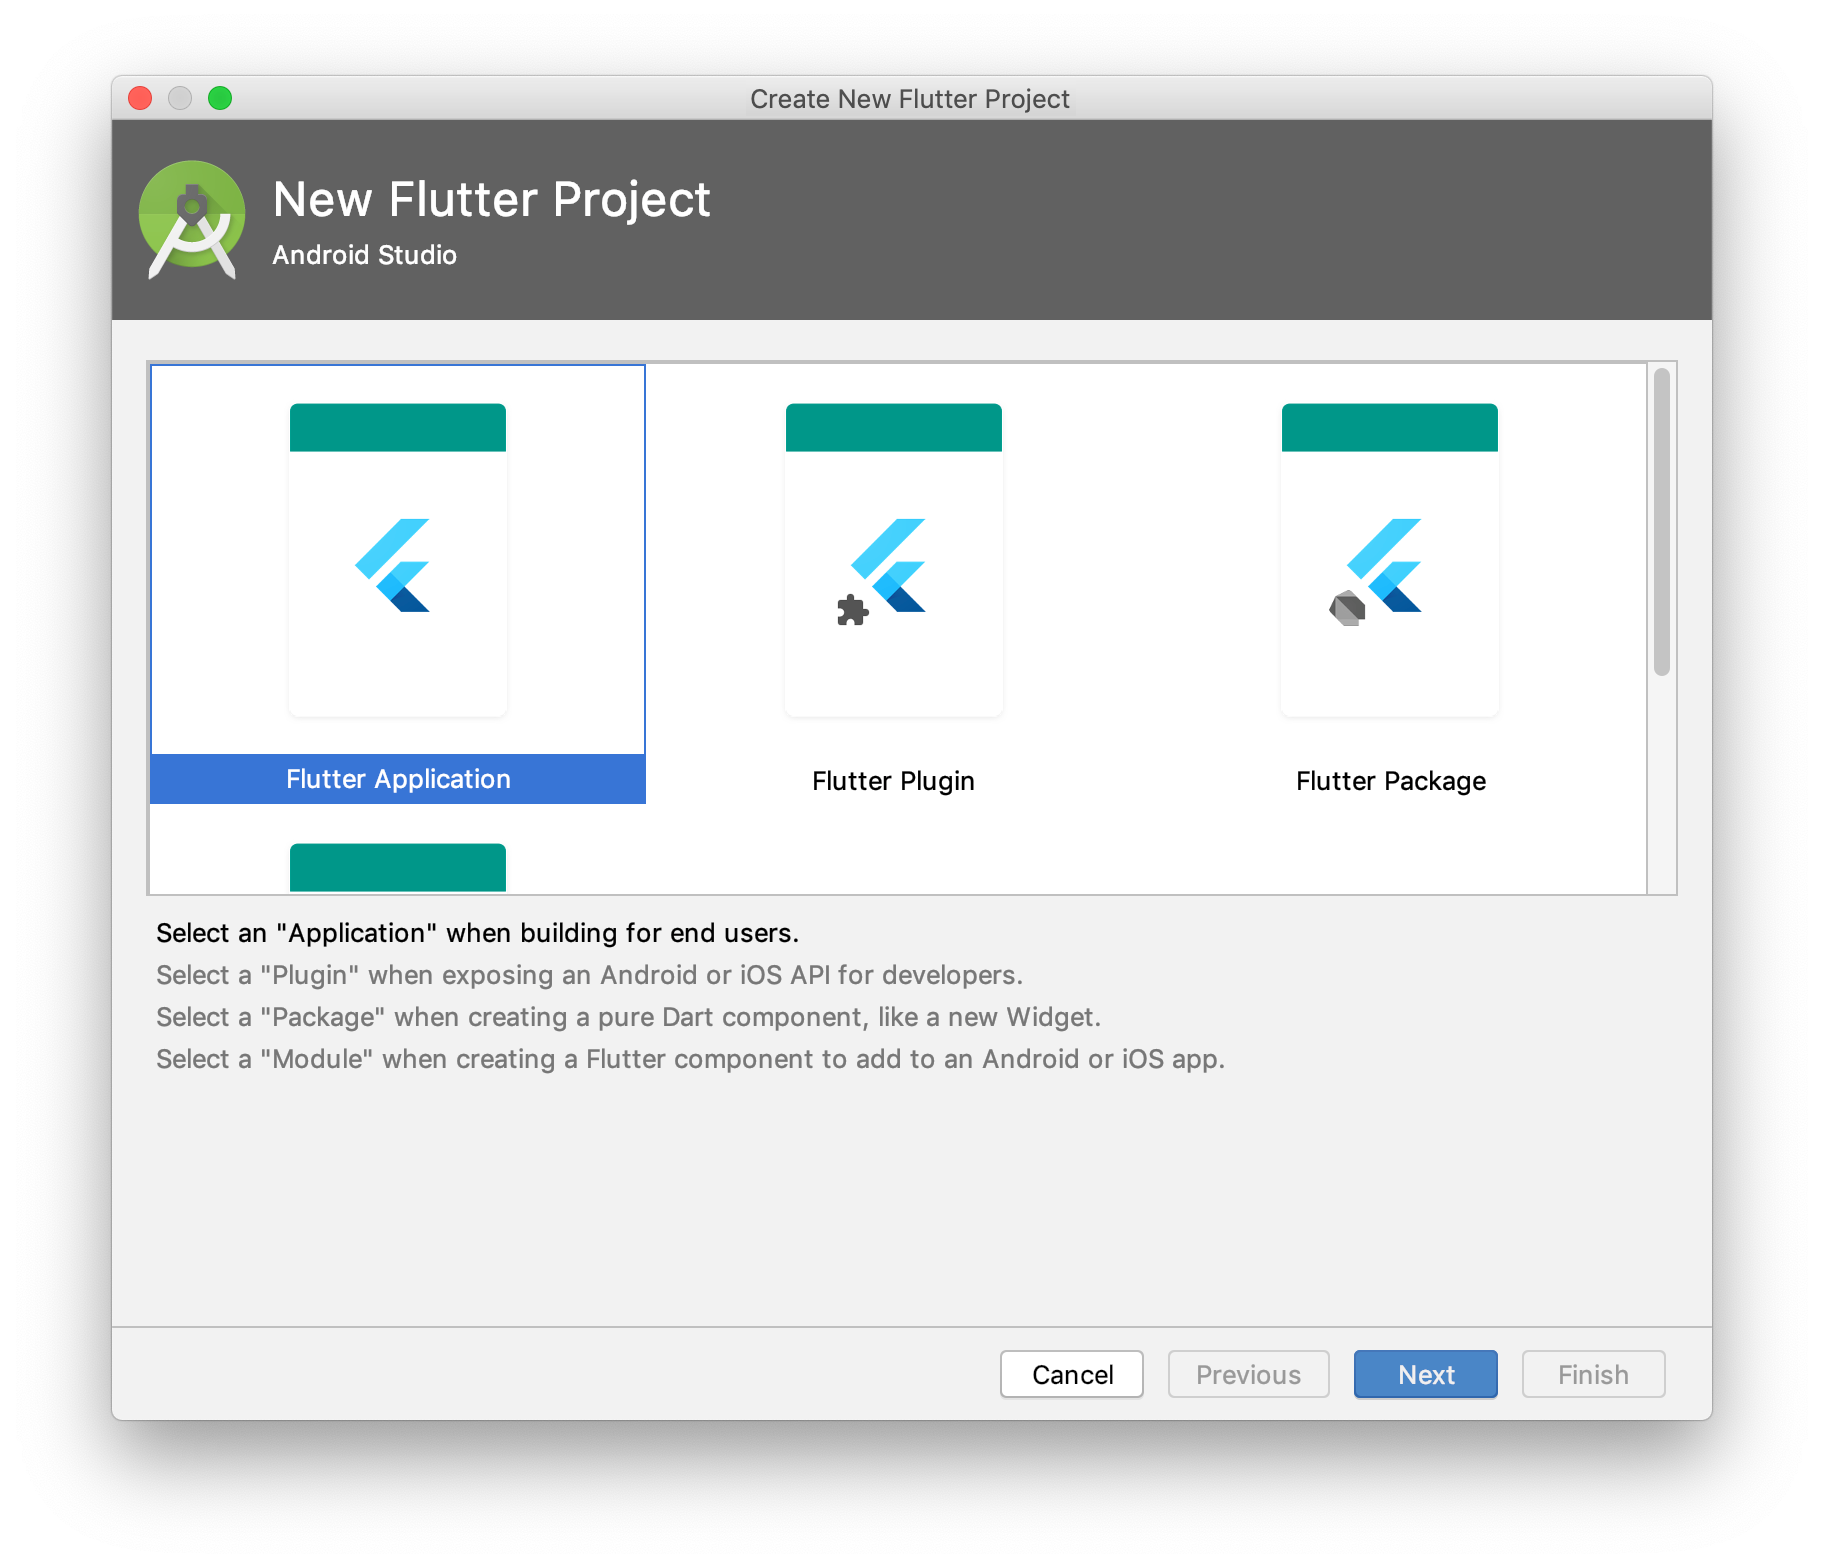 androidstudio_flutter_project.png